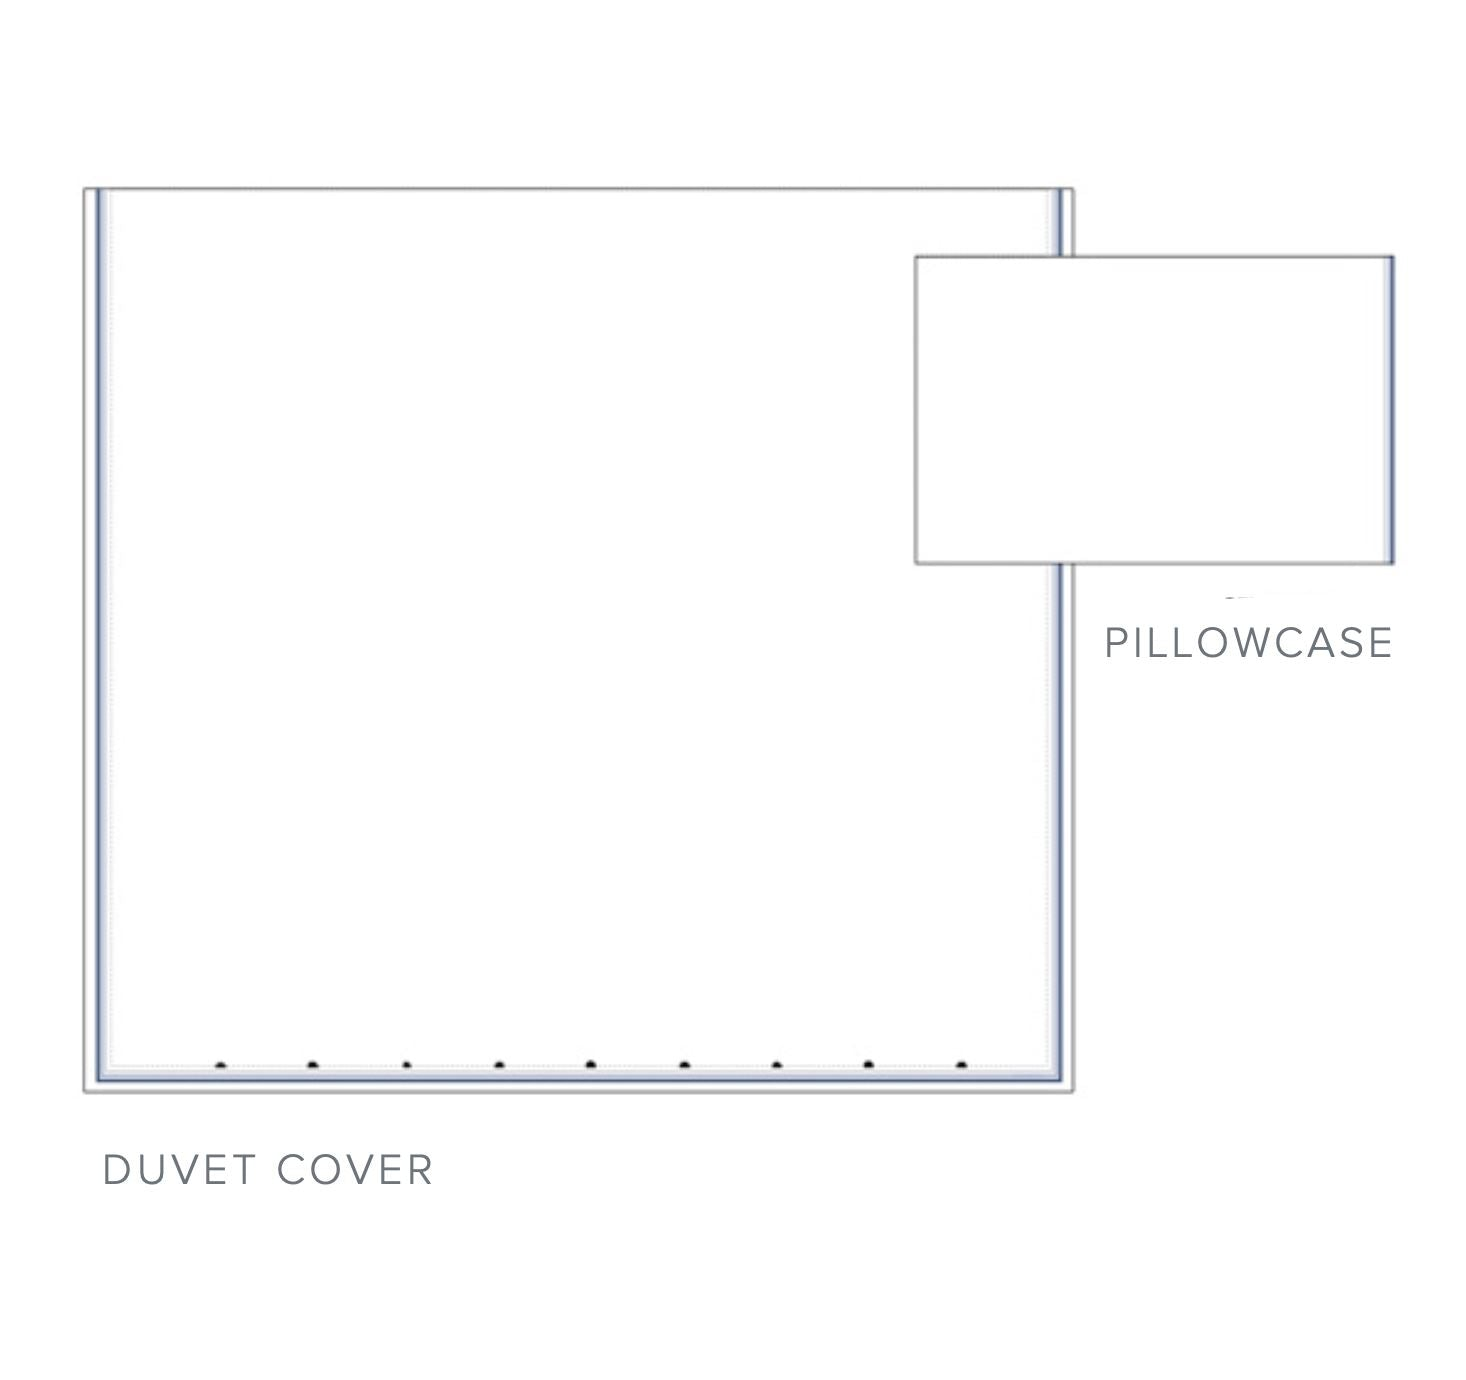 Cavriglia Embroidery Bedding | Dea Fine Linens Hotel Sheets & Duvets - Bed Diagram 1